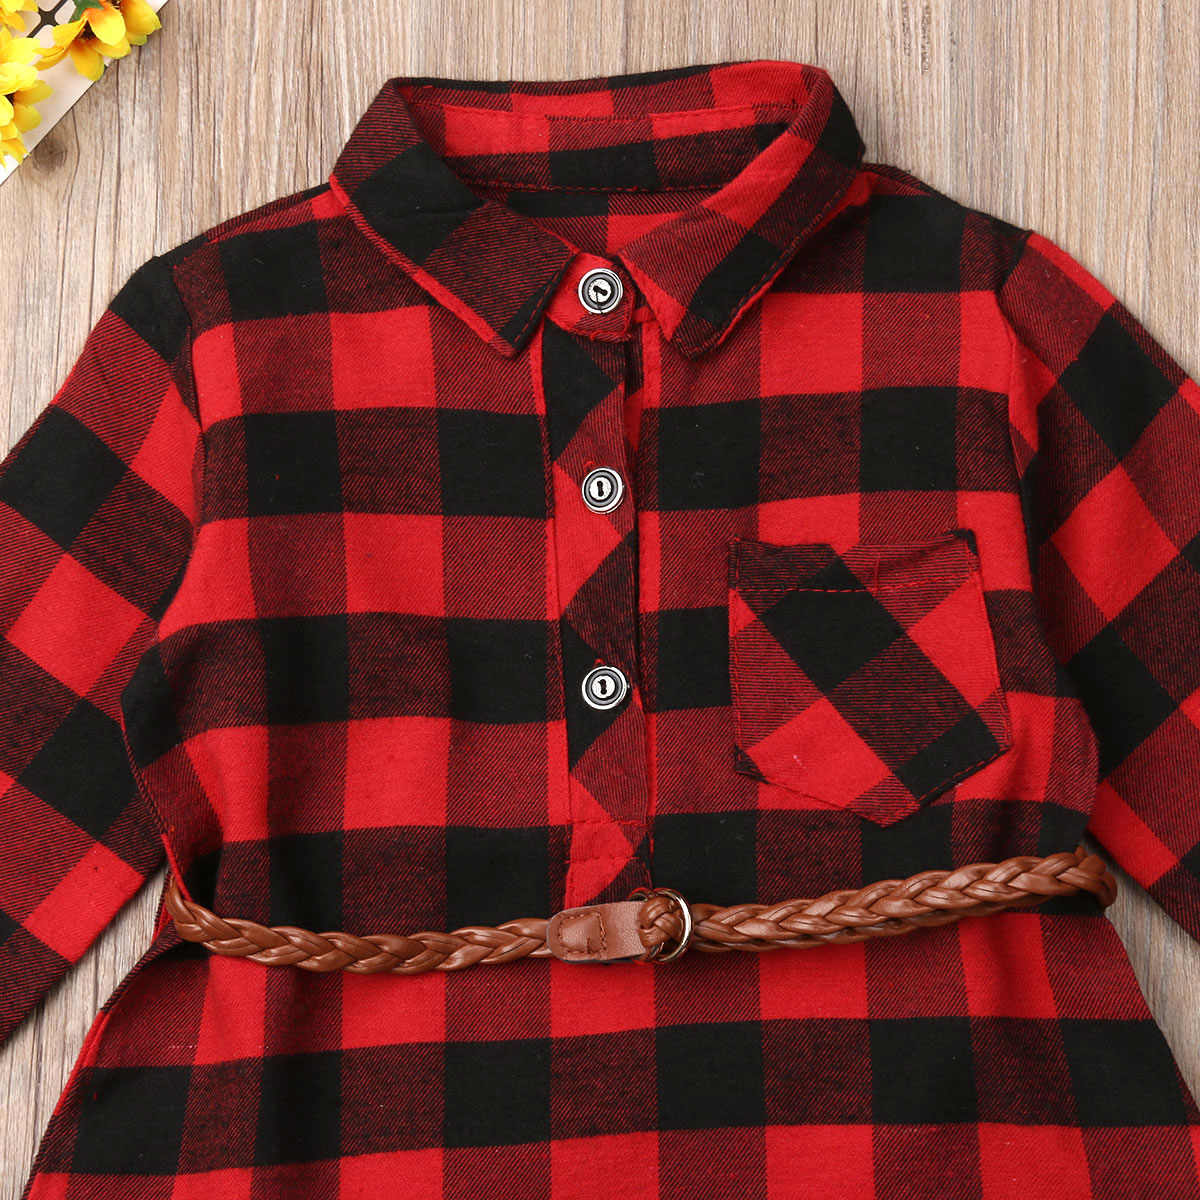 Toddler Baby Girls Plaid Outfit Ruffles Belted Botton Down Top Long Sleeve Blouses Kid Fall Shirts Clothes